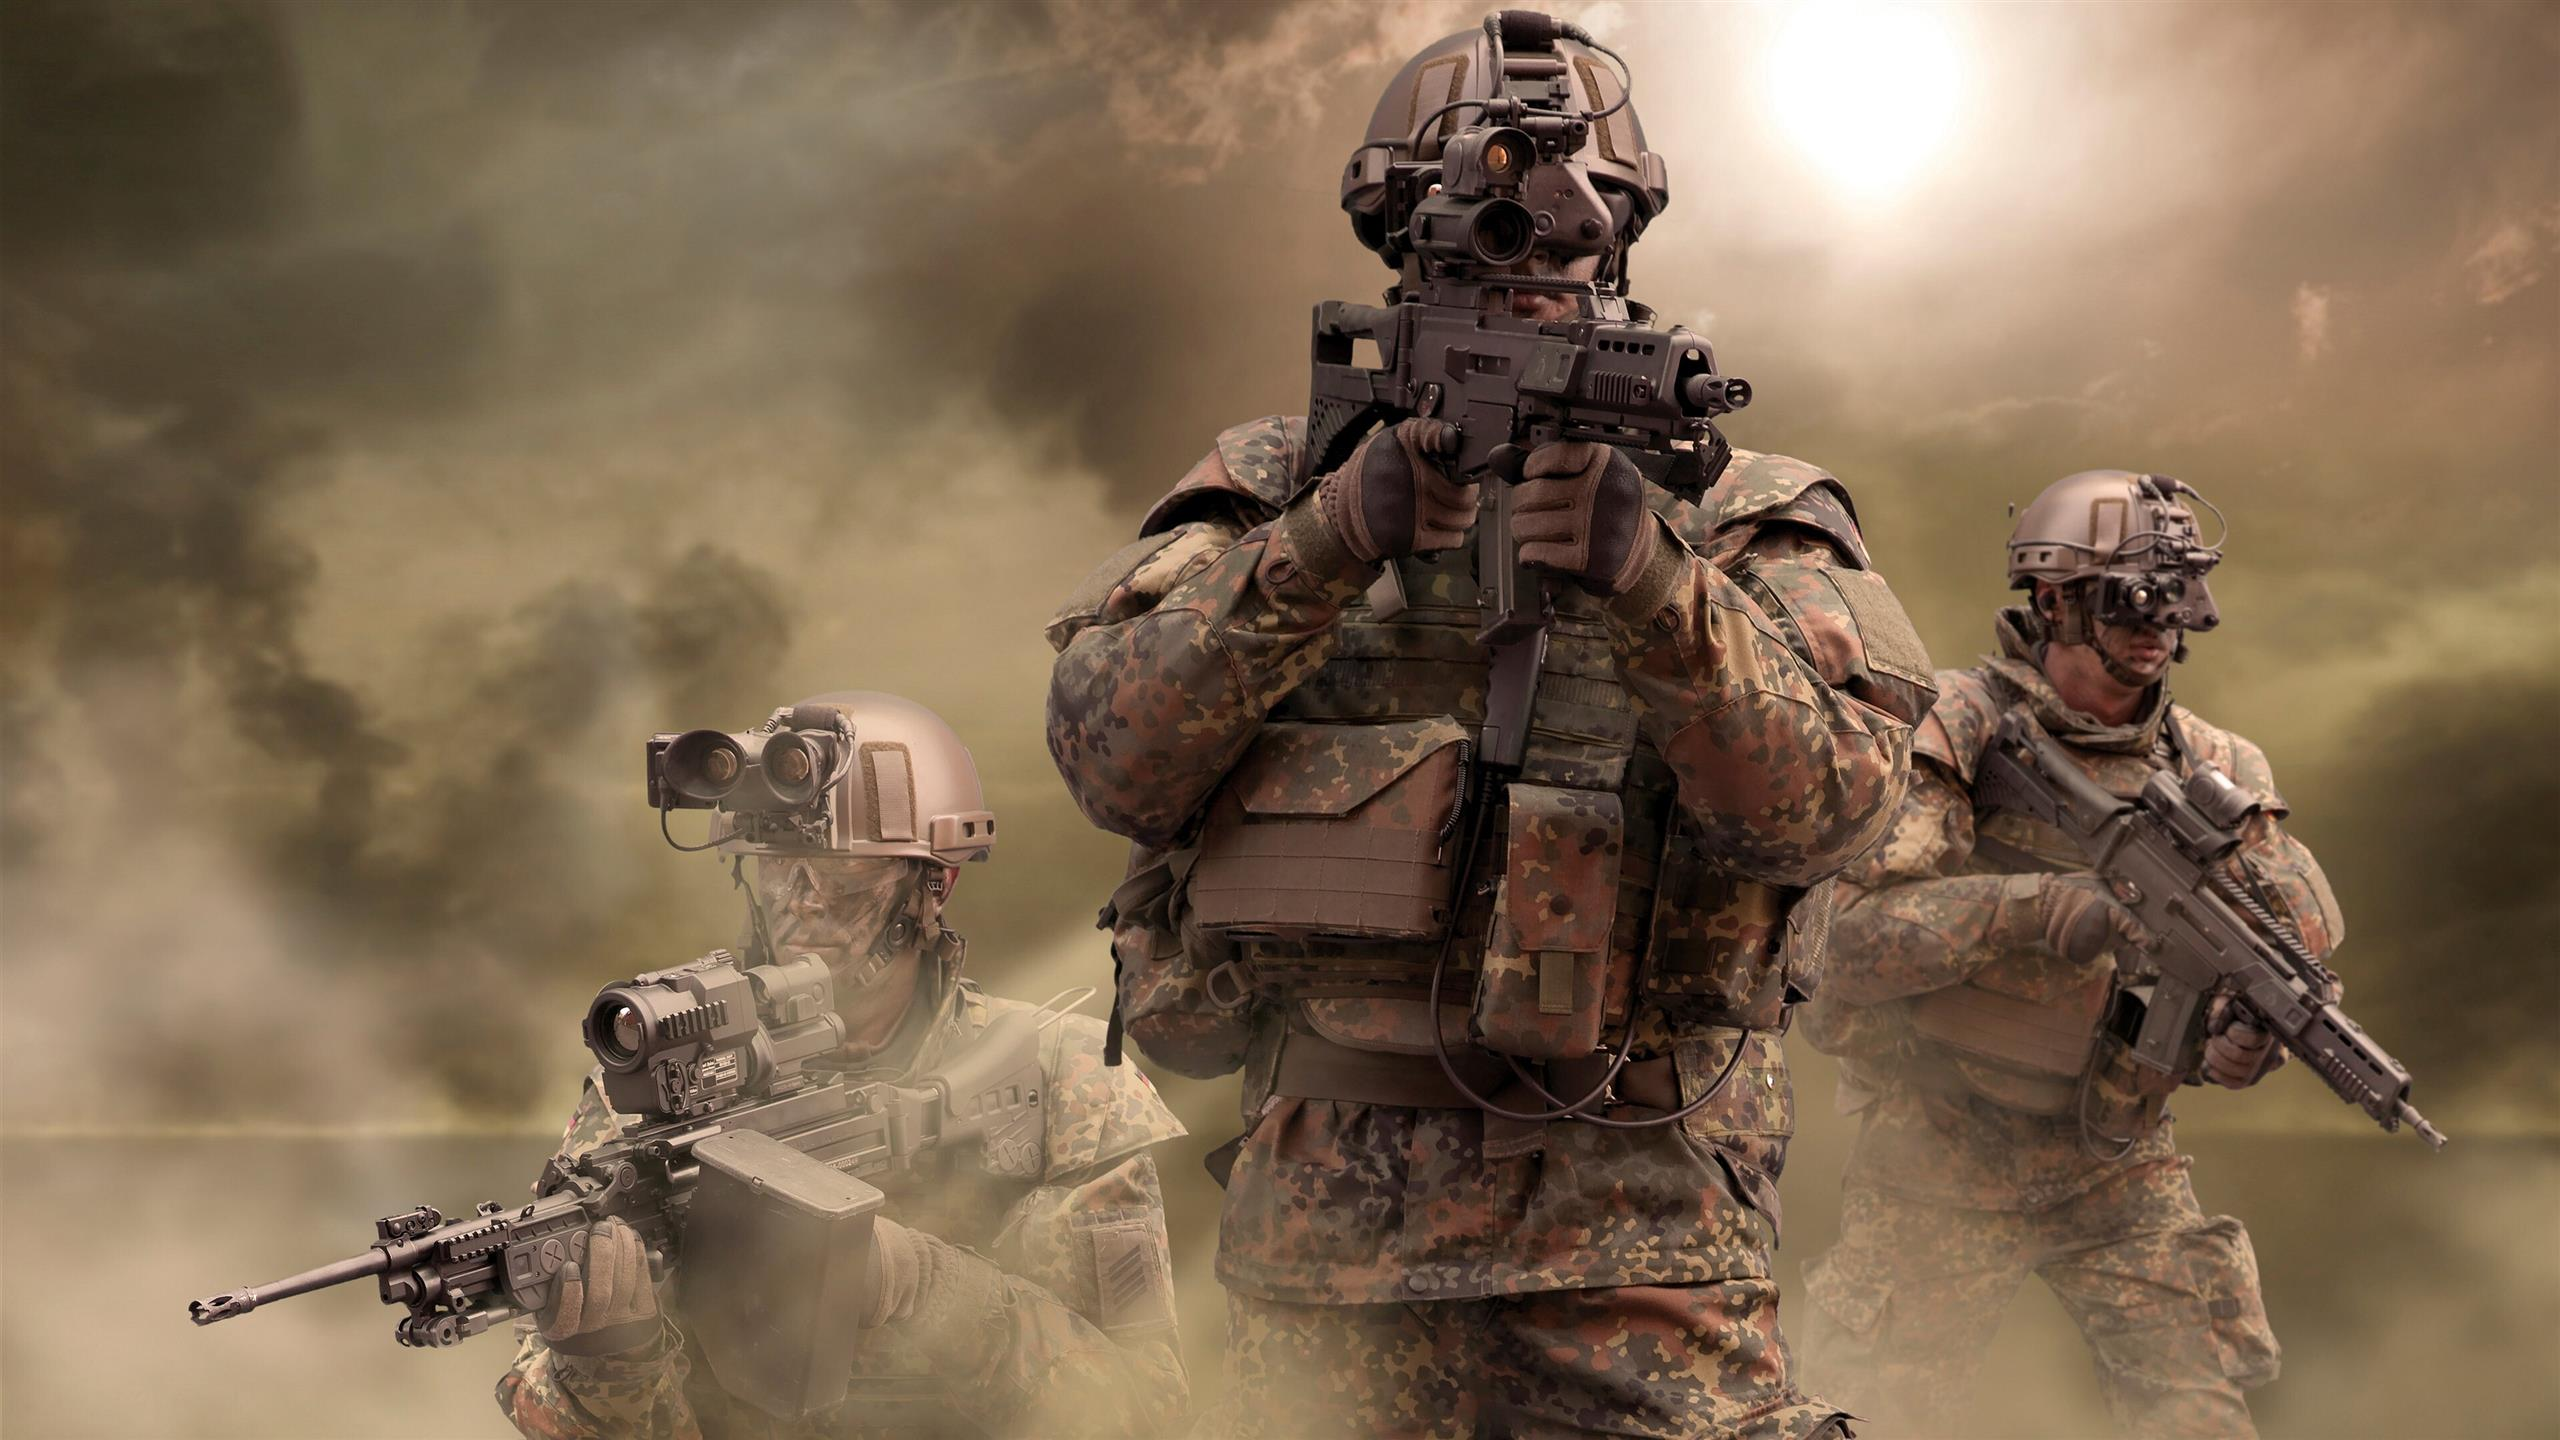 2560x1440 Army Soldier Background Wallpaper